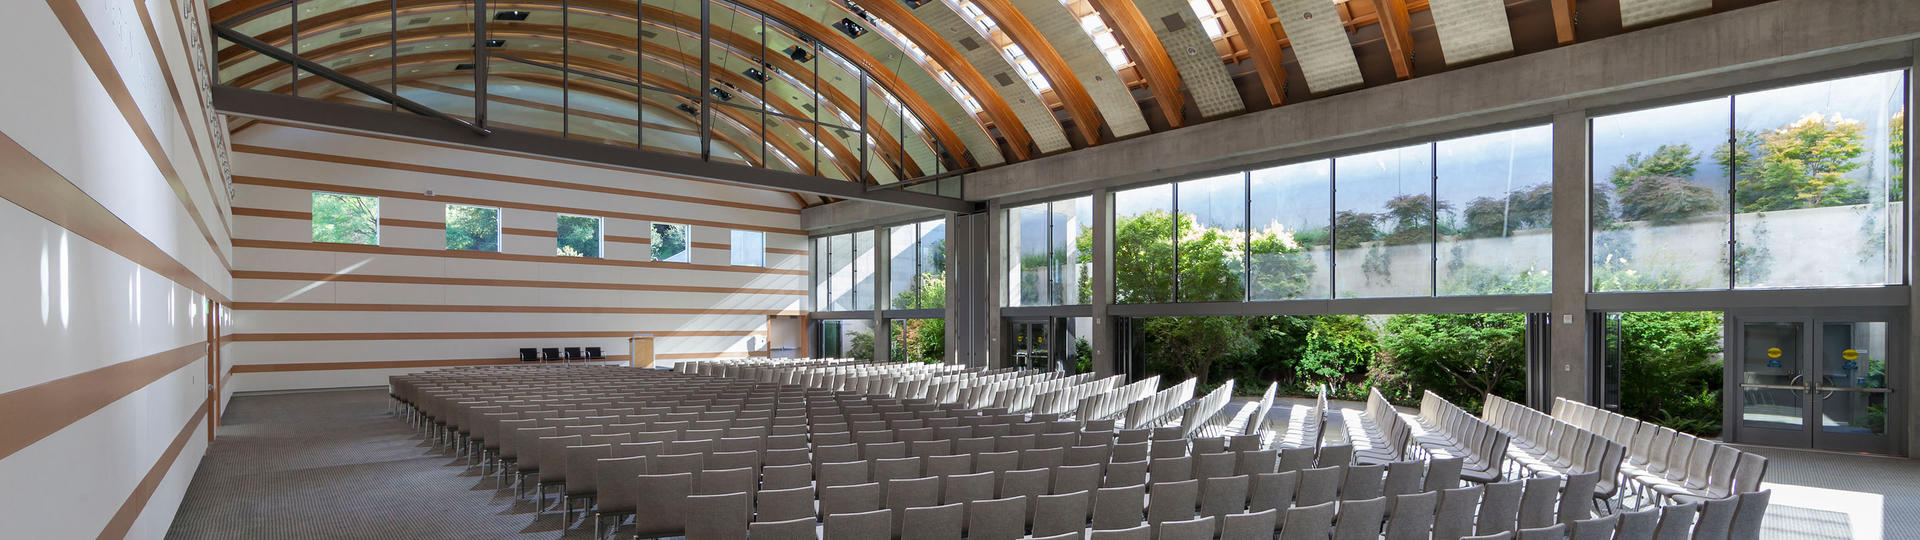 Guerin Pavilion interior showing theater seating set-up